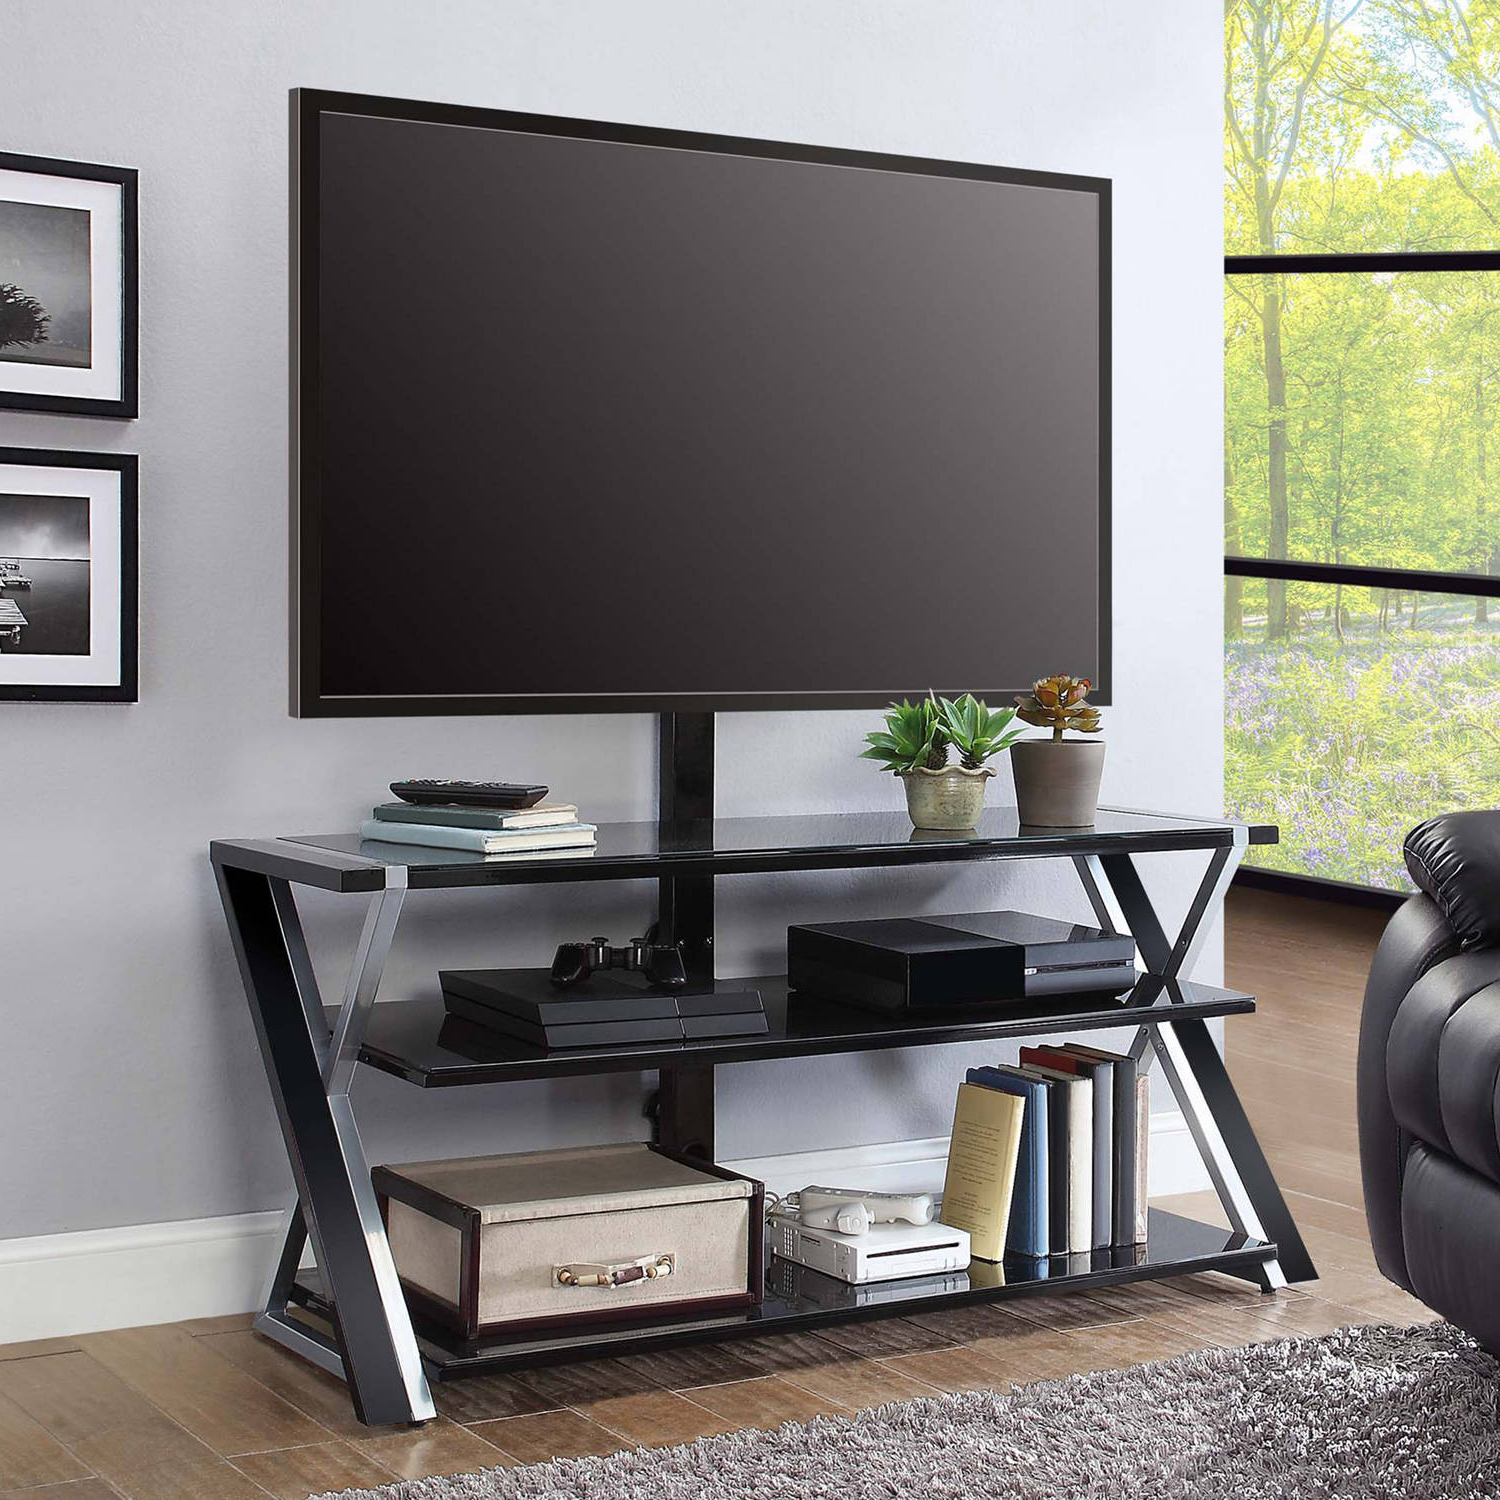 """Whalen Xavier 3 In 1 Tv Stand For Tvs Up To 70"""", With 3 Display In Walton Grey 60 Inch Tv Stands (Gallery 19 of 20)"""